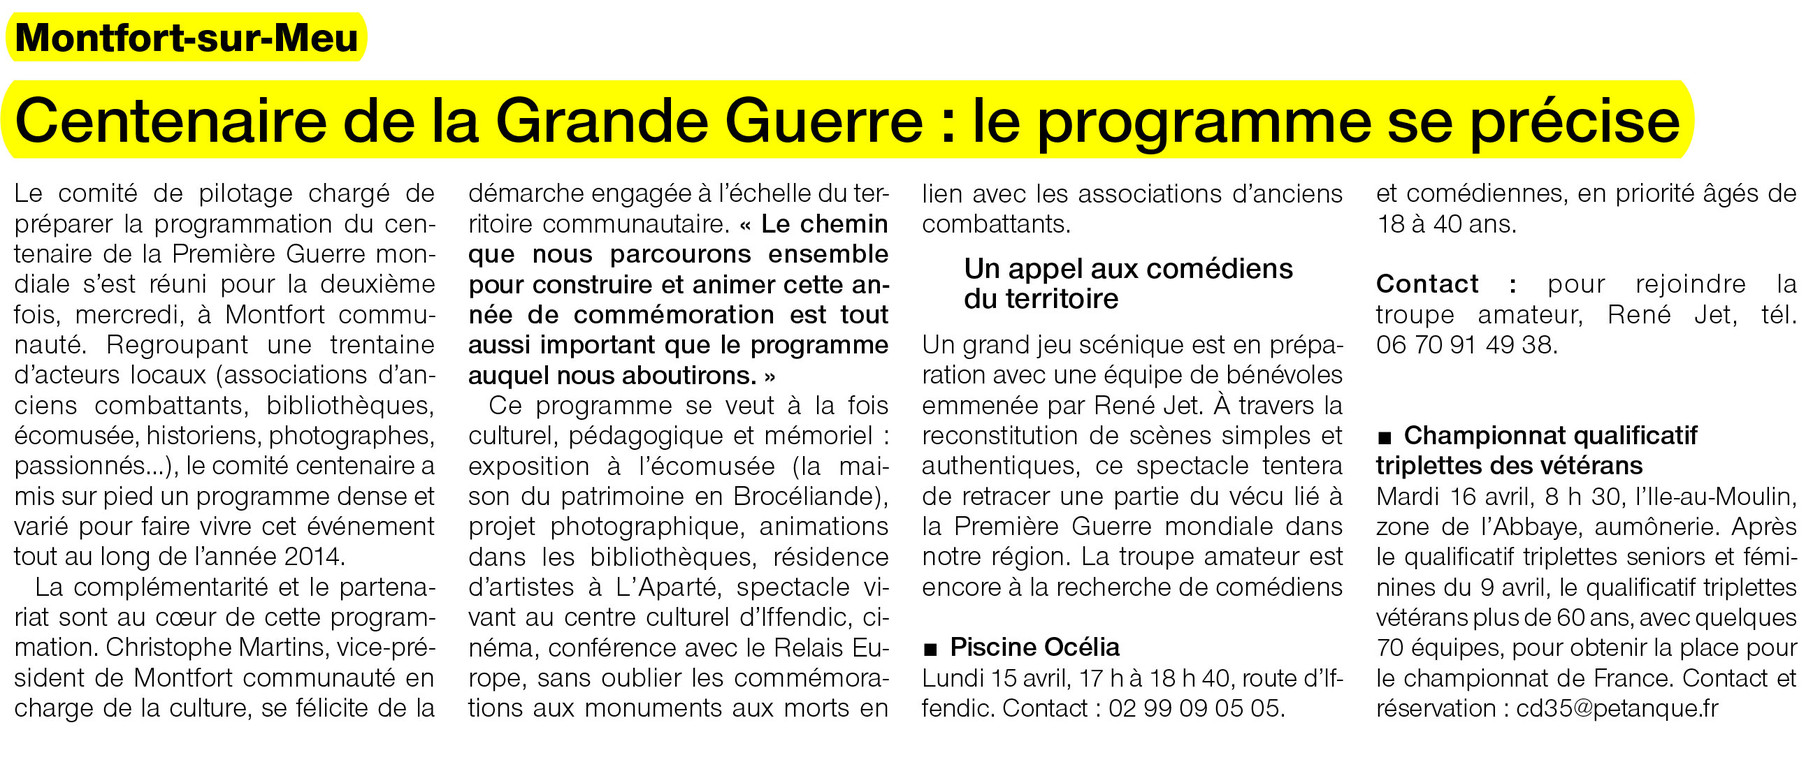 Ouest-France - 15 avril 2013